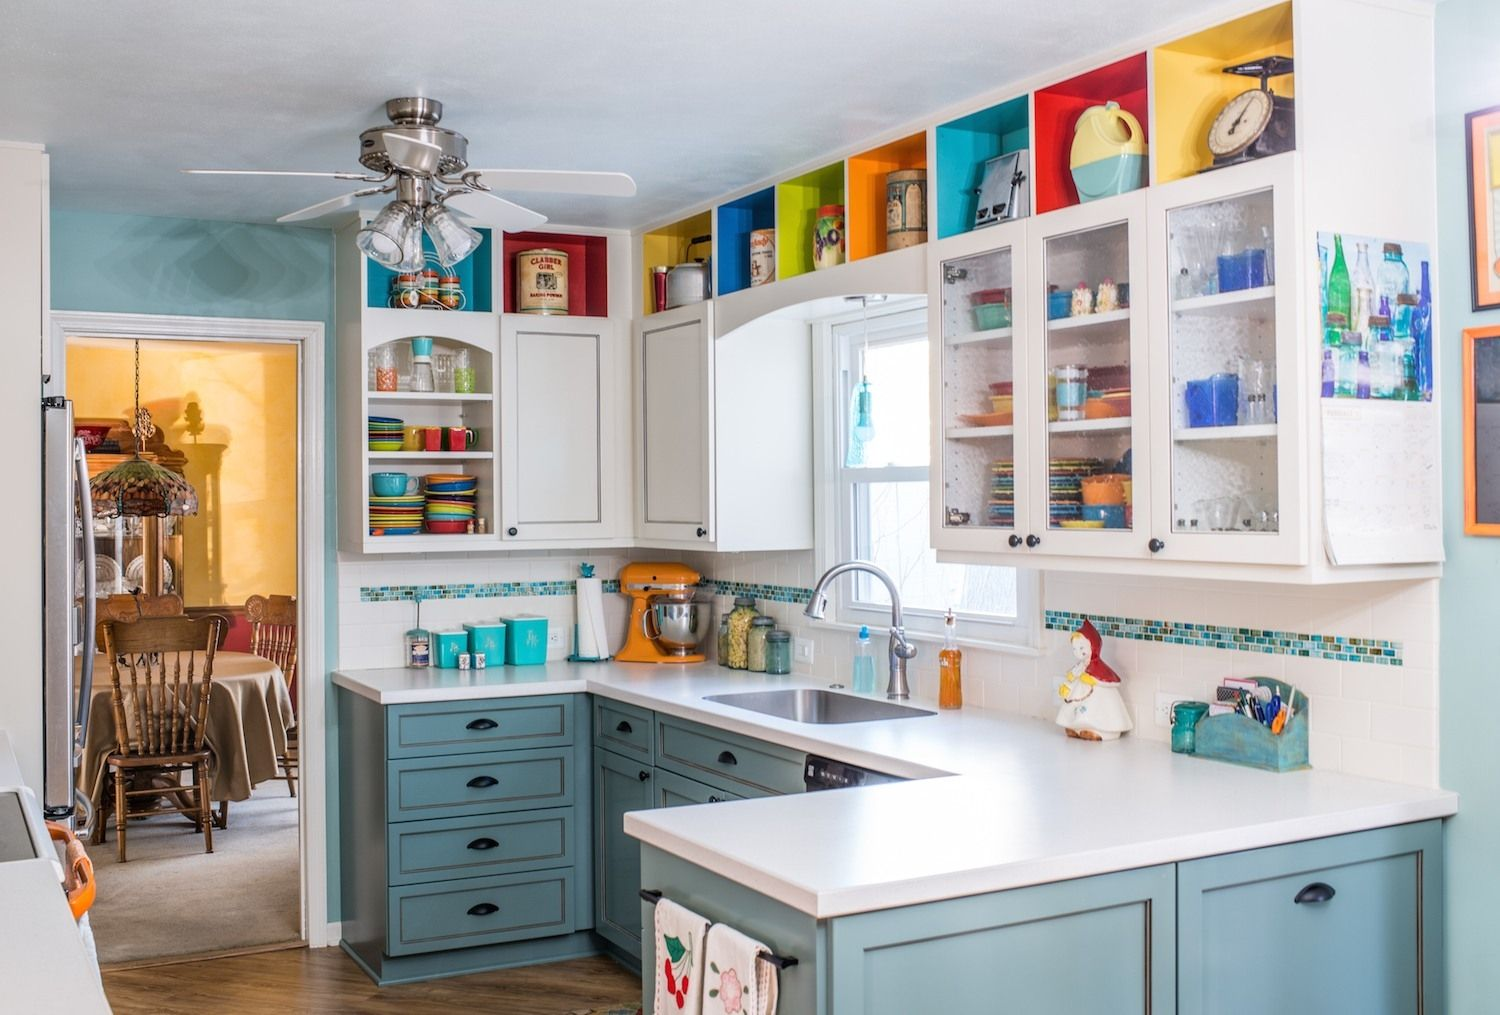 10 Creative Quirky Kitchen Decor You'll Love | Quirky ...